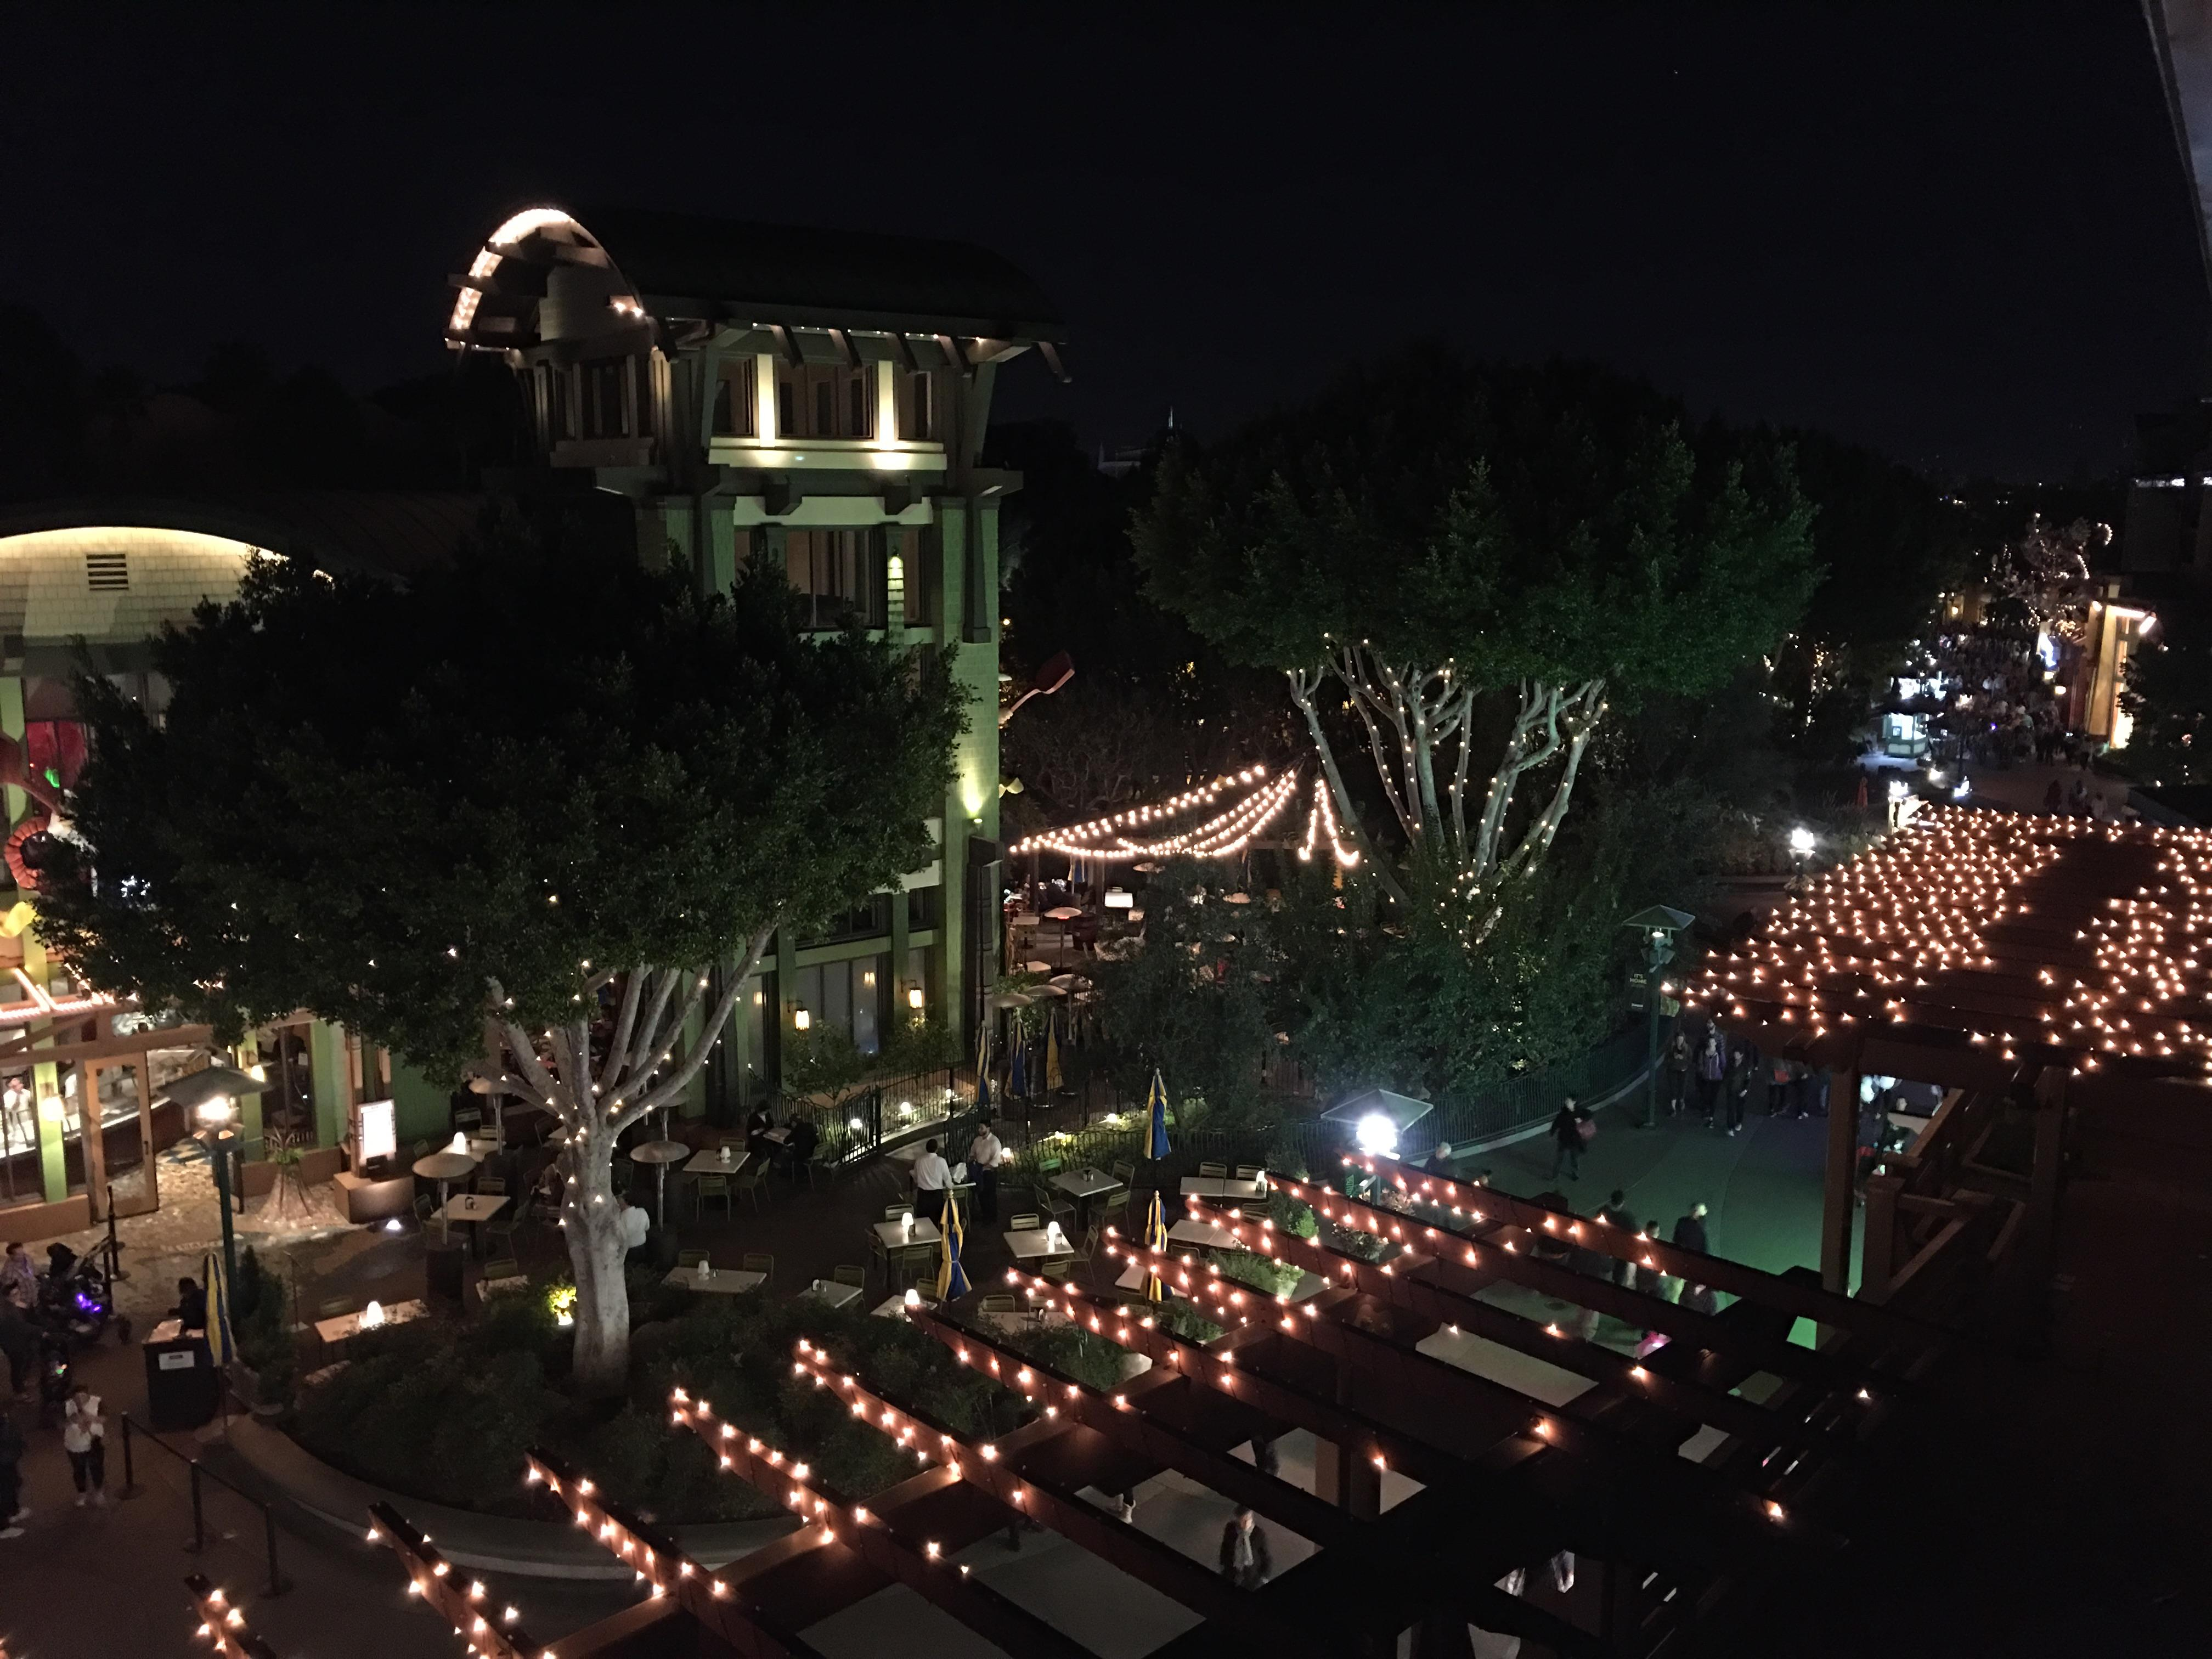 View from room 4151 at night